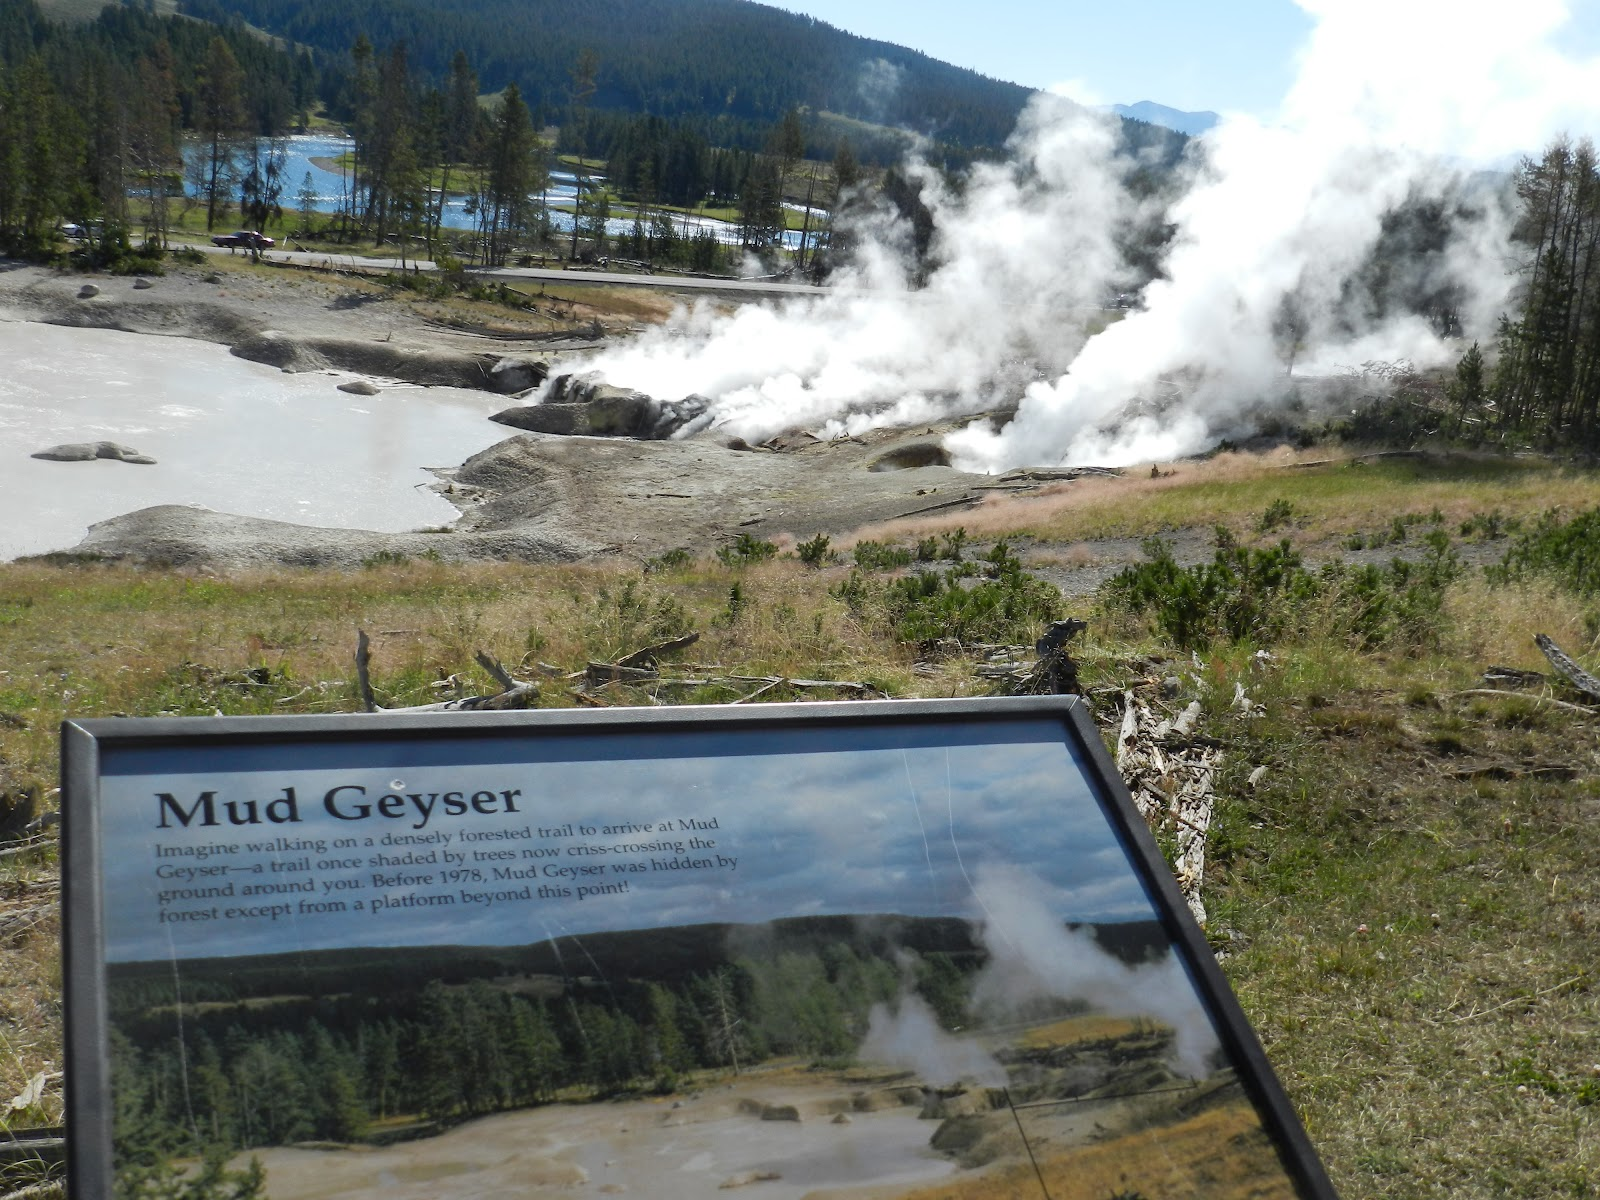 our first stop was at mud volcano more bubbling mud and geysers this is located between fishing bridge and canyon village on the map above